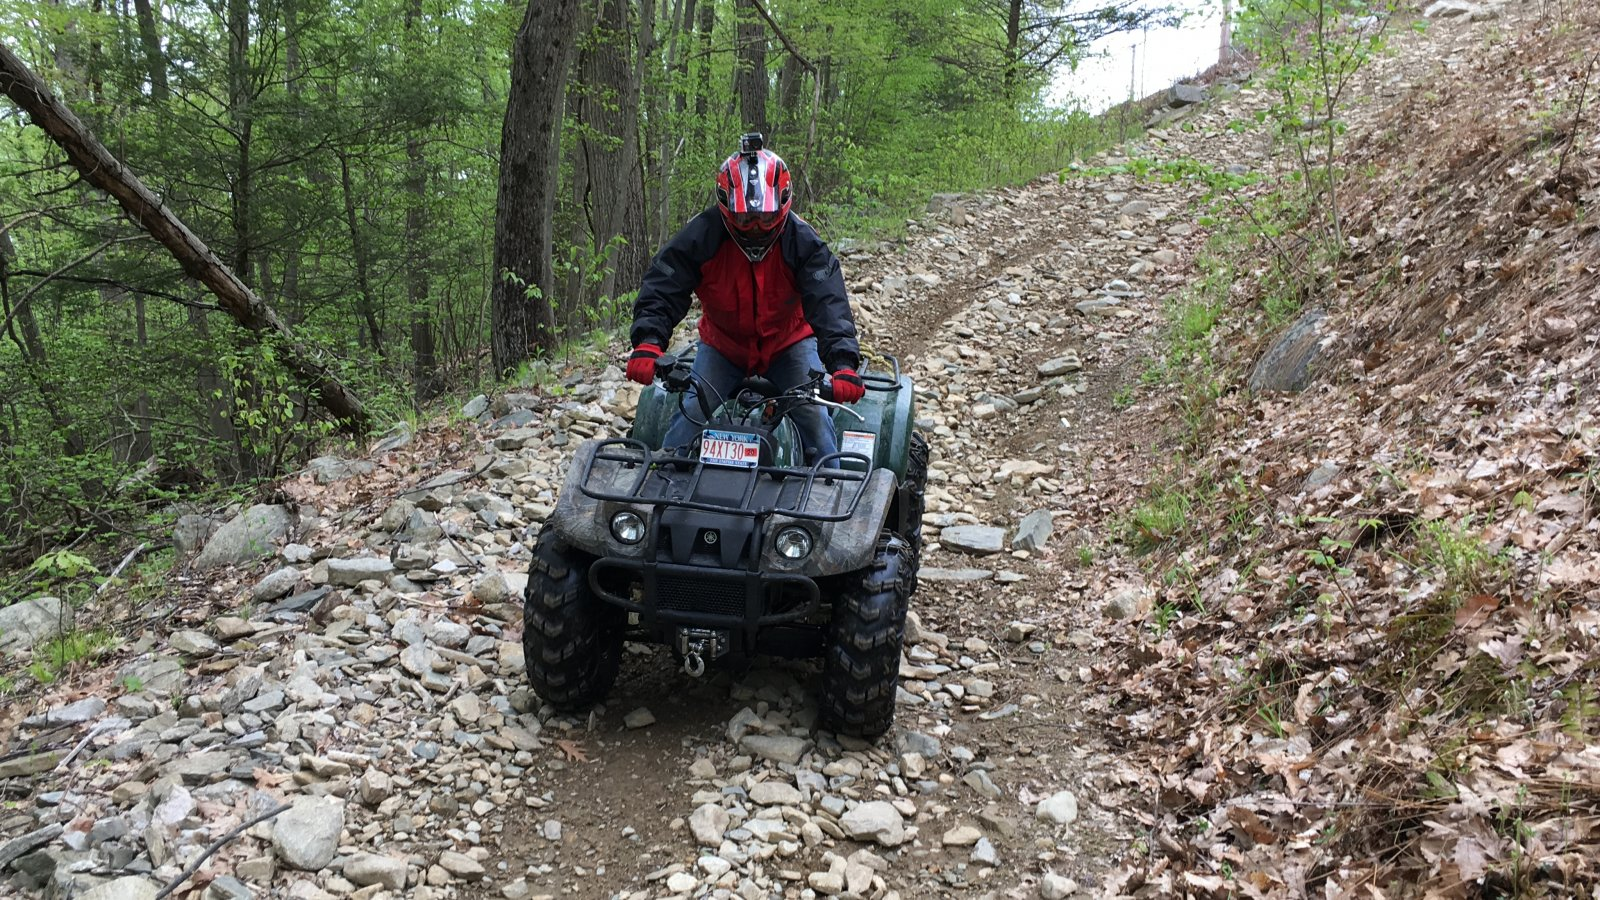 Yamaha Kodiak 400 Trail Riding